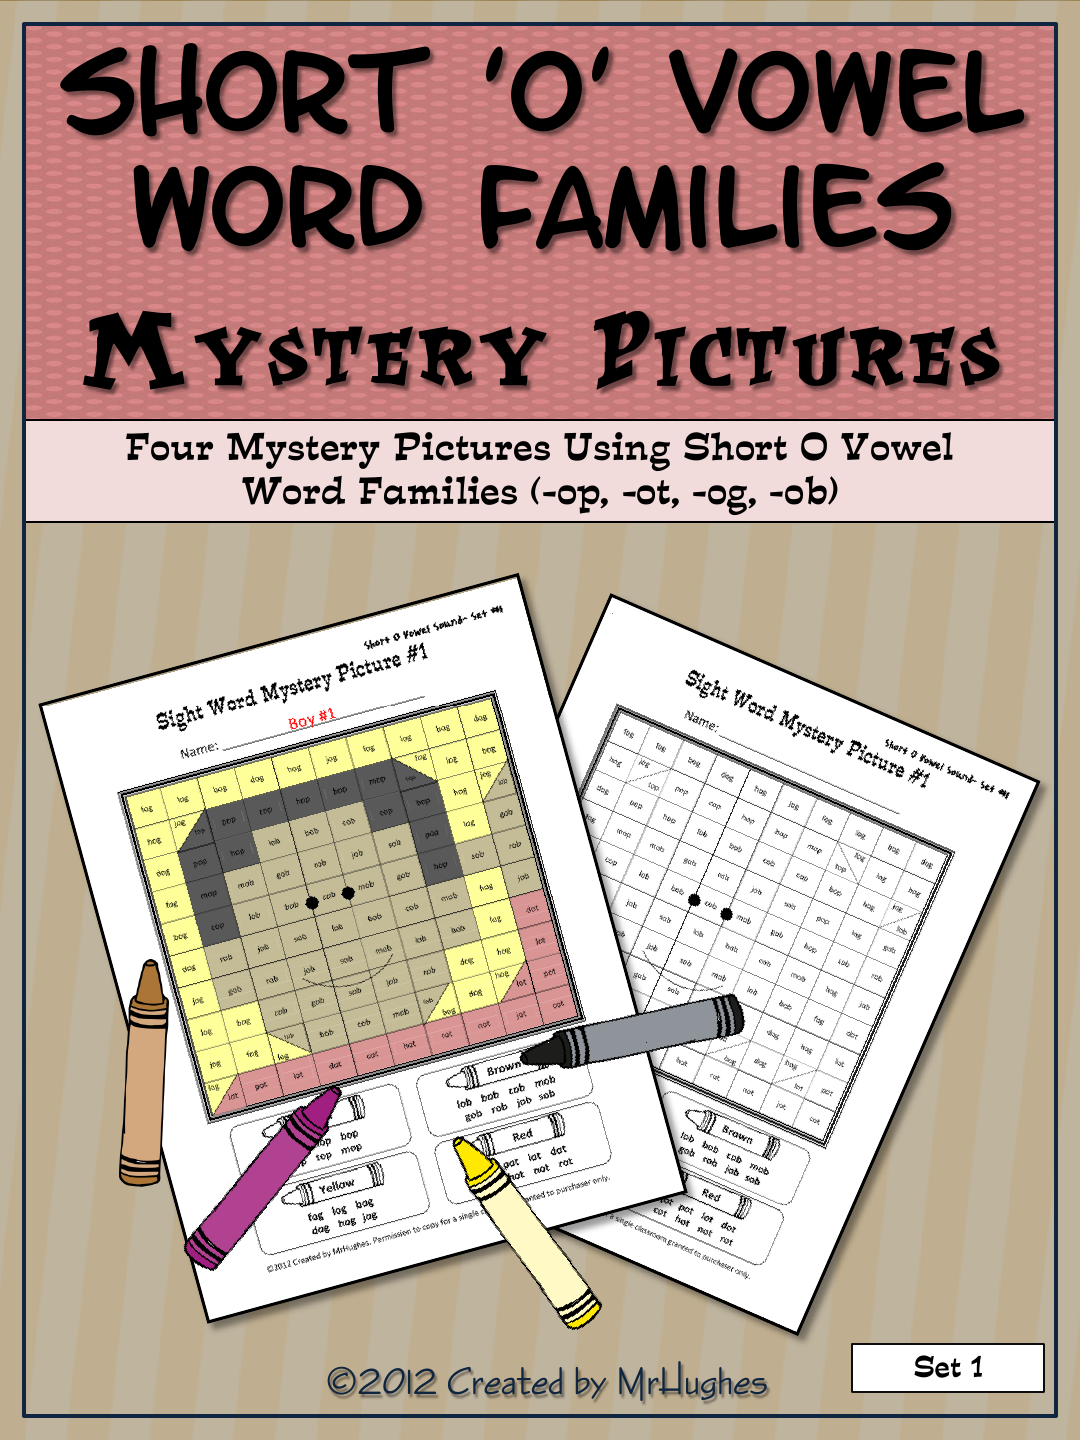 Short O Vowel Word Families Mystery Pictures